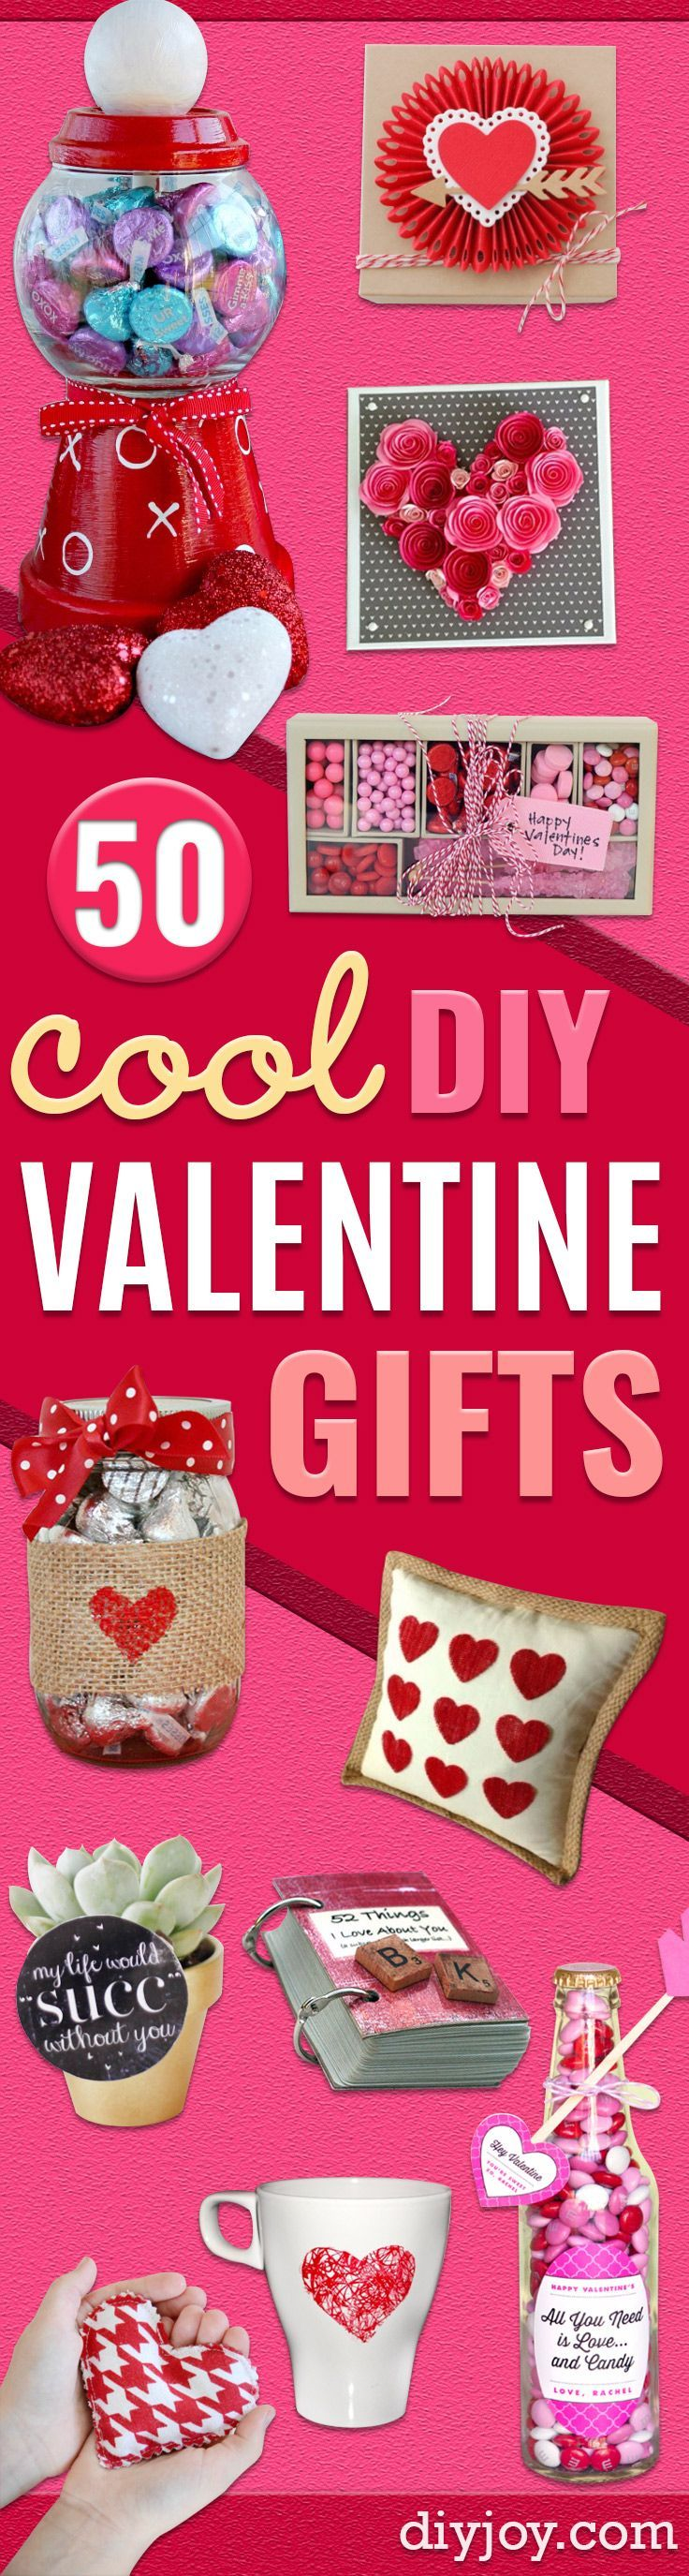 Best 25+ Teenage boyfriend gifts ideas on Pinterest | Christmas ...